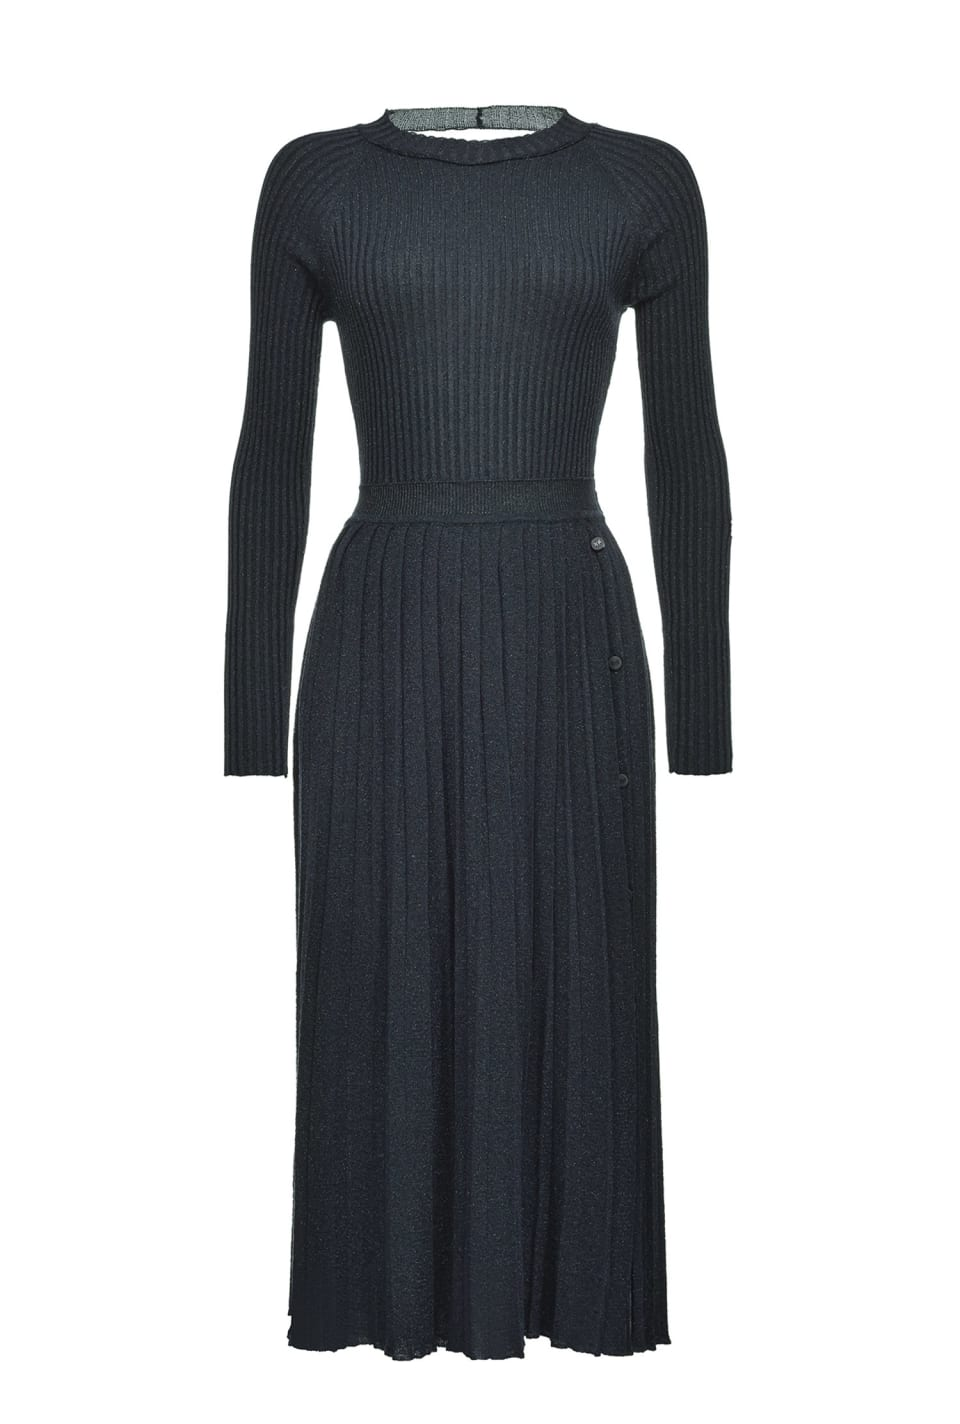 Lurex knit dress - Pinko